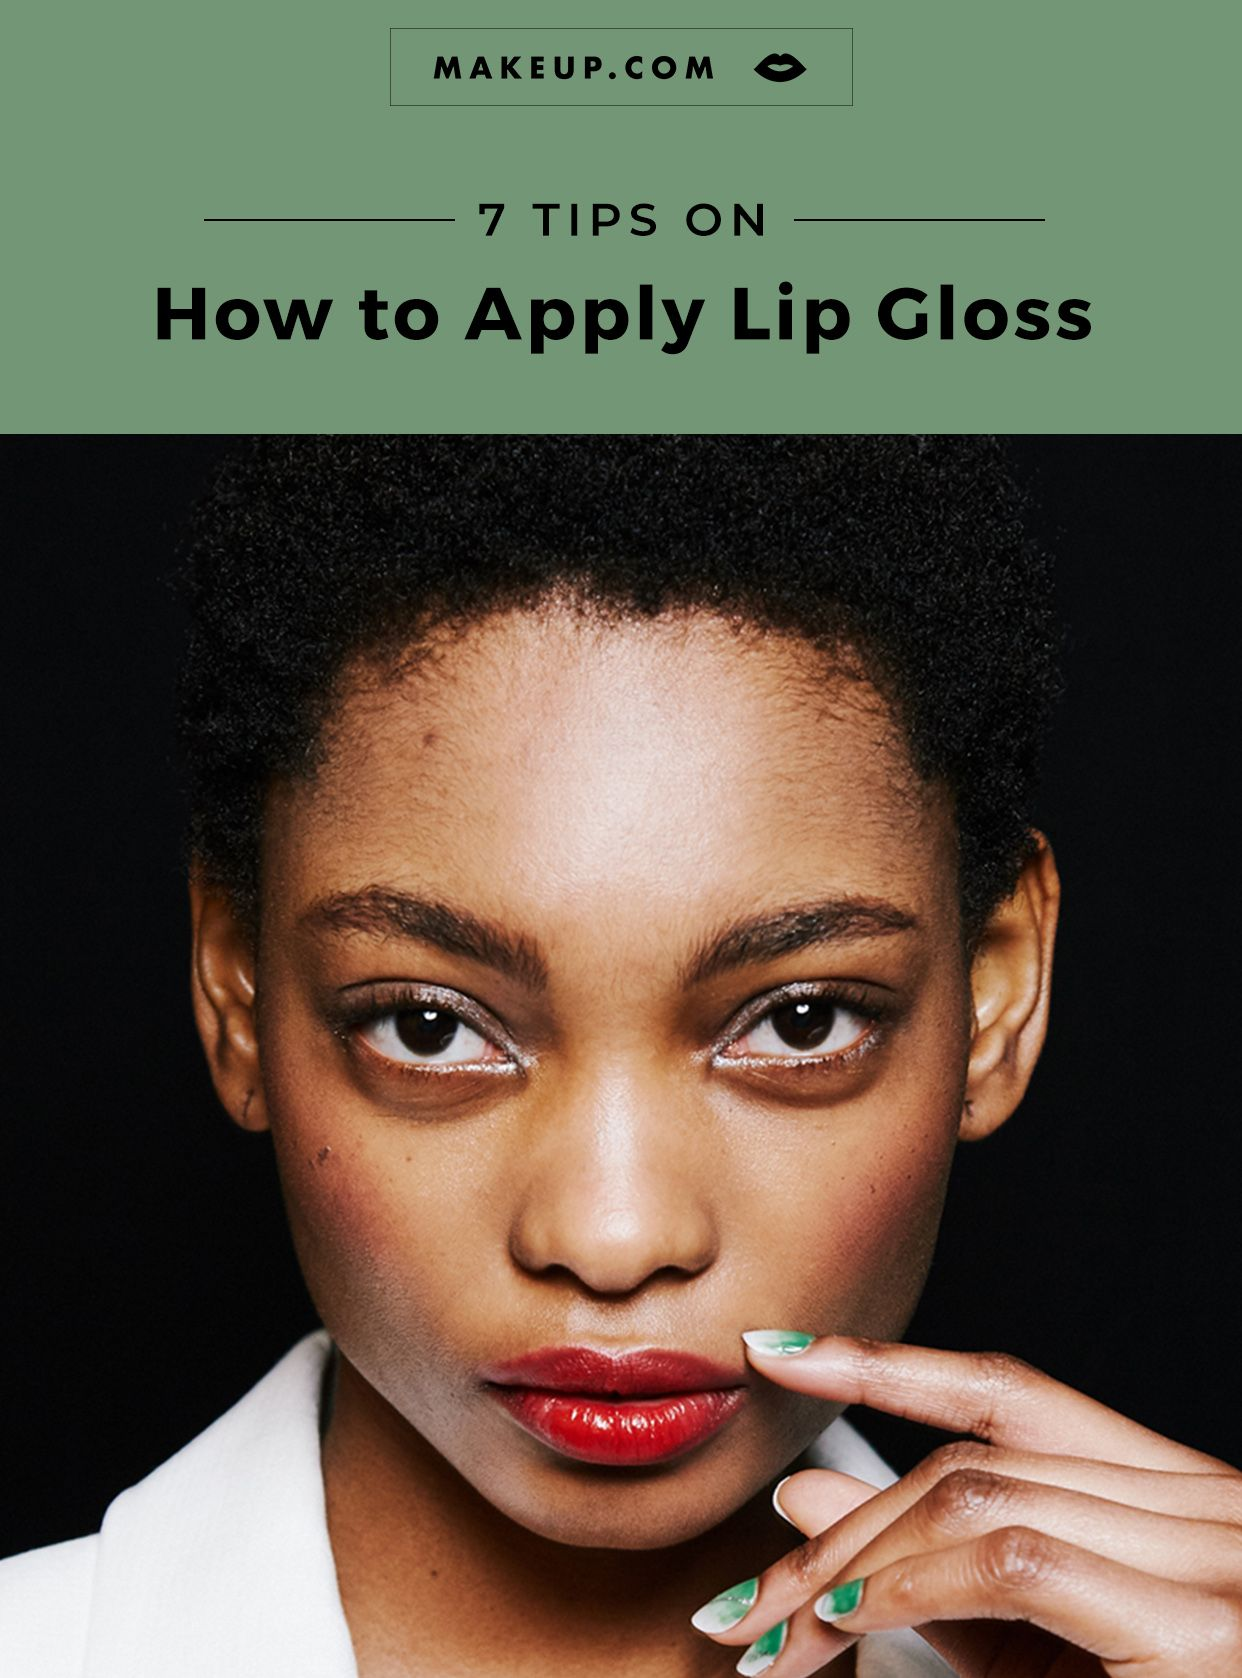 Lip Gloss Tips From a Makeup Artist Makeup artist tips